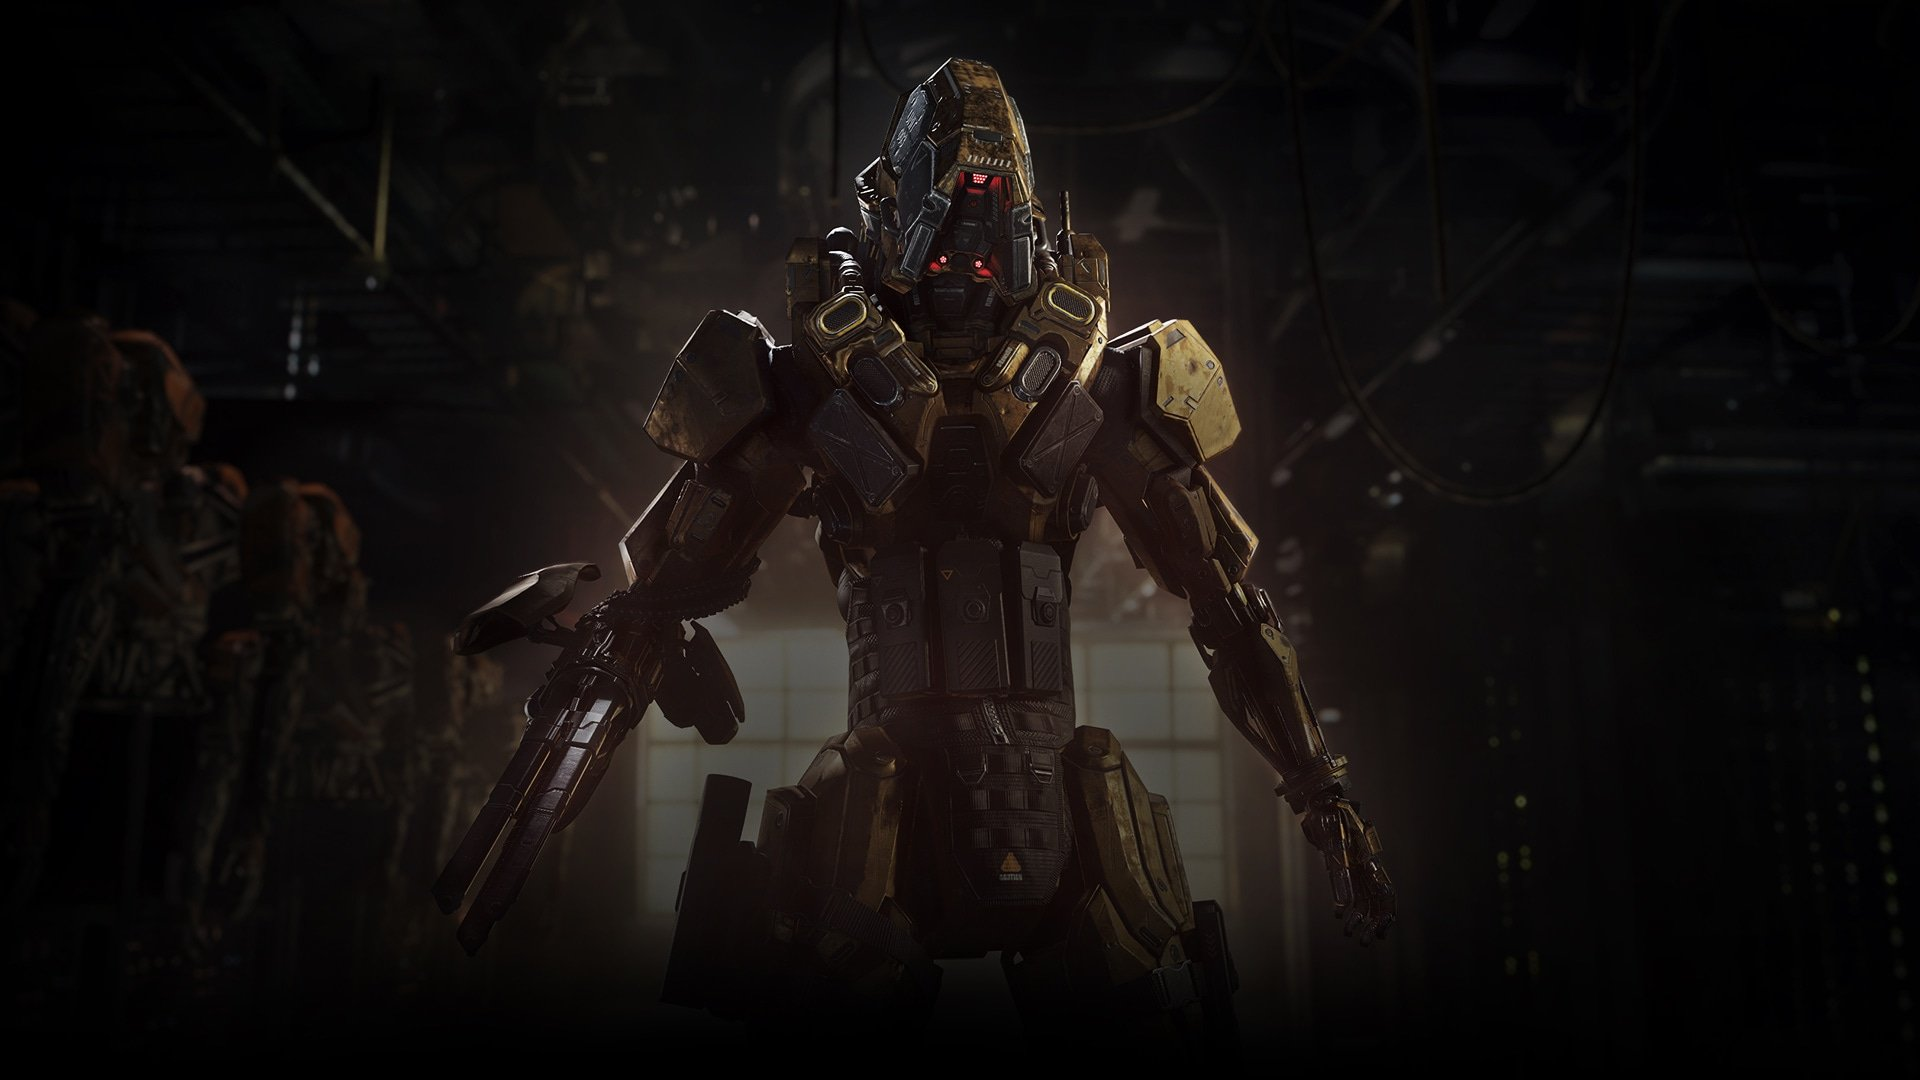 New Hi Res Images For The 8 Known Black Ops 3 Specialist Found